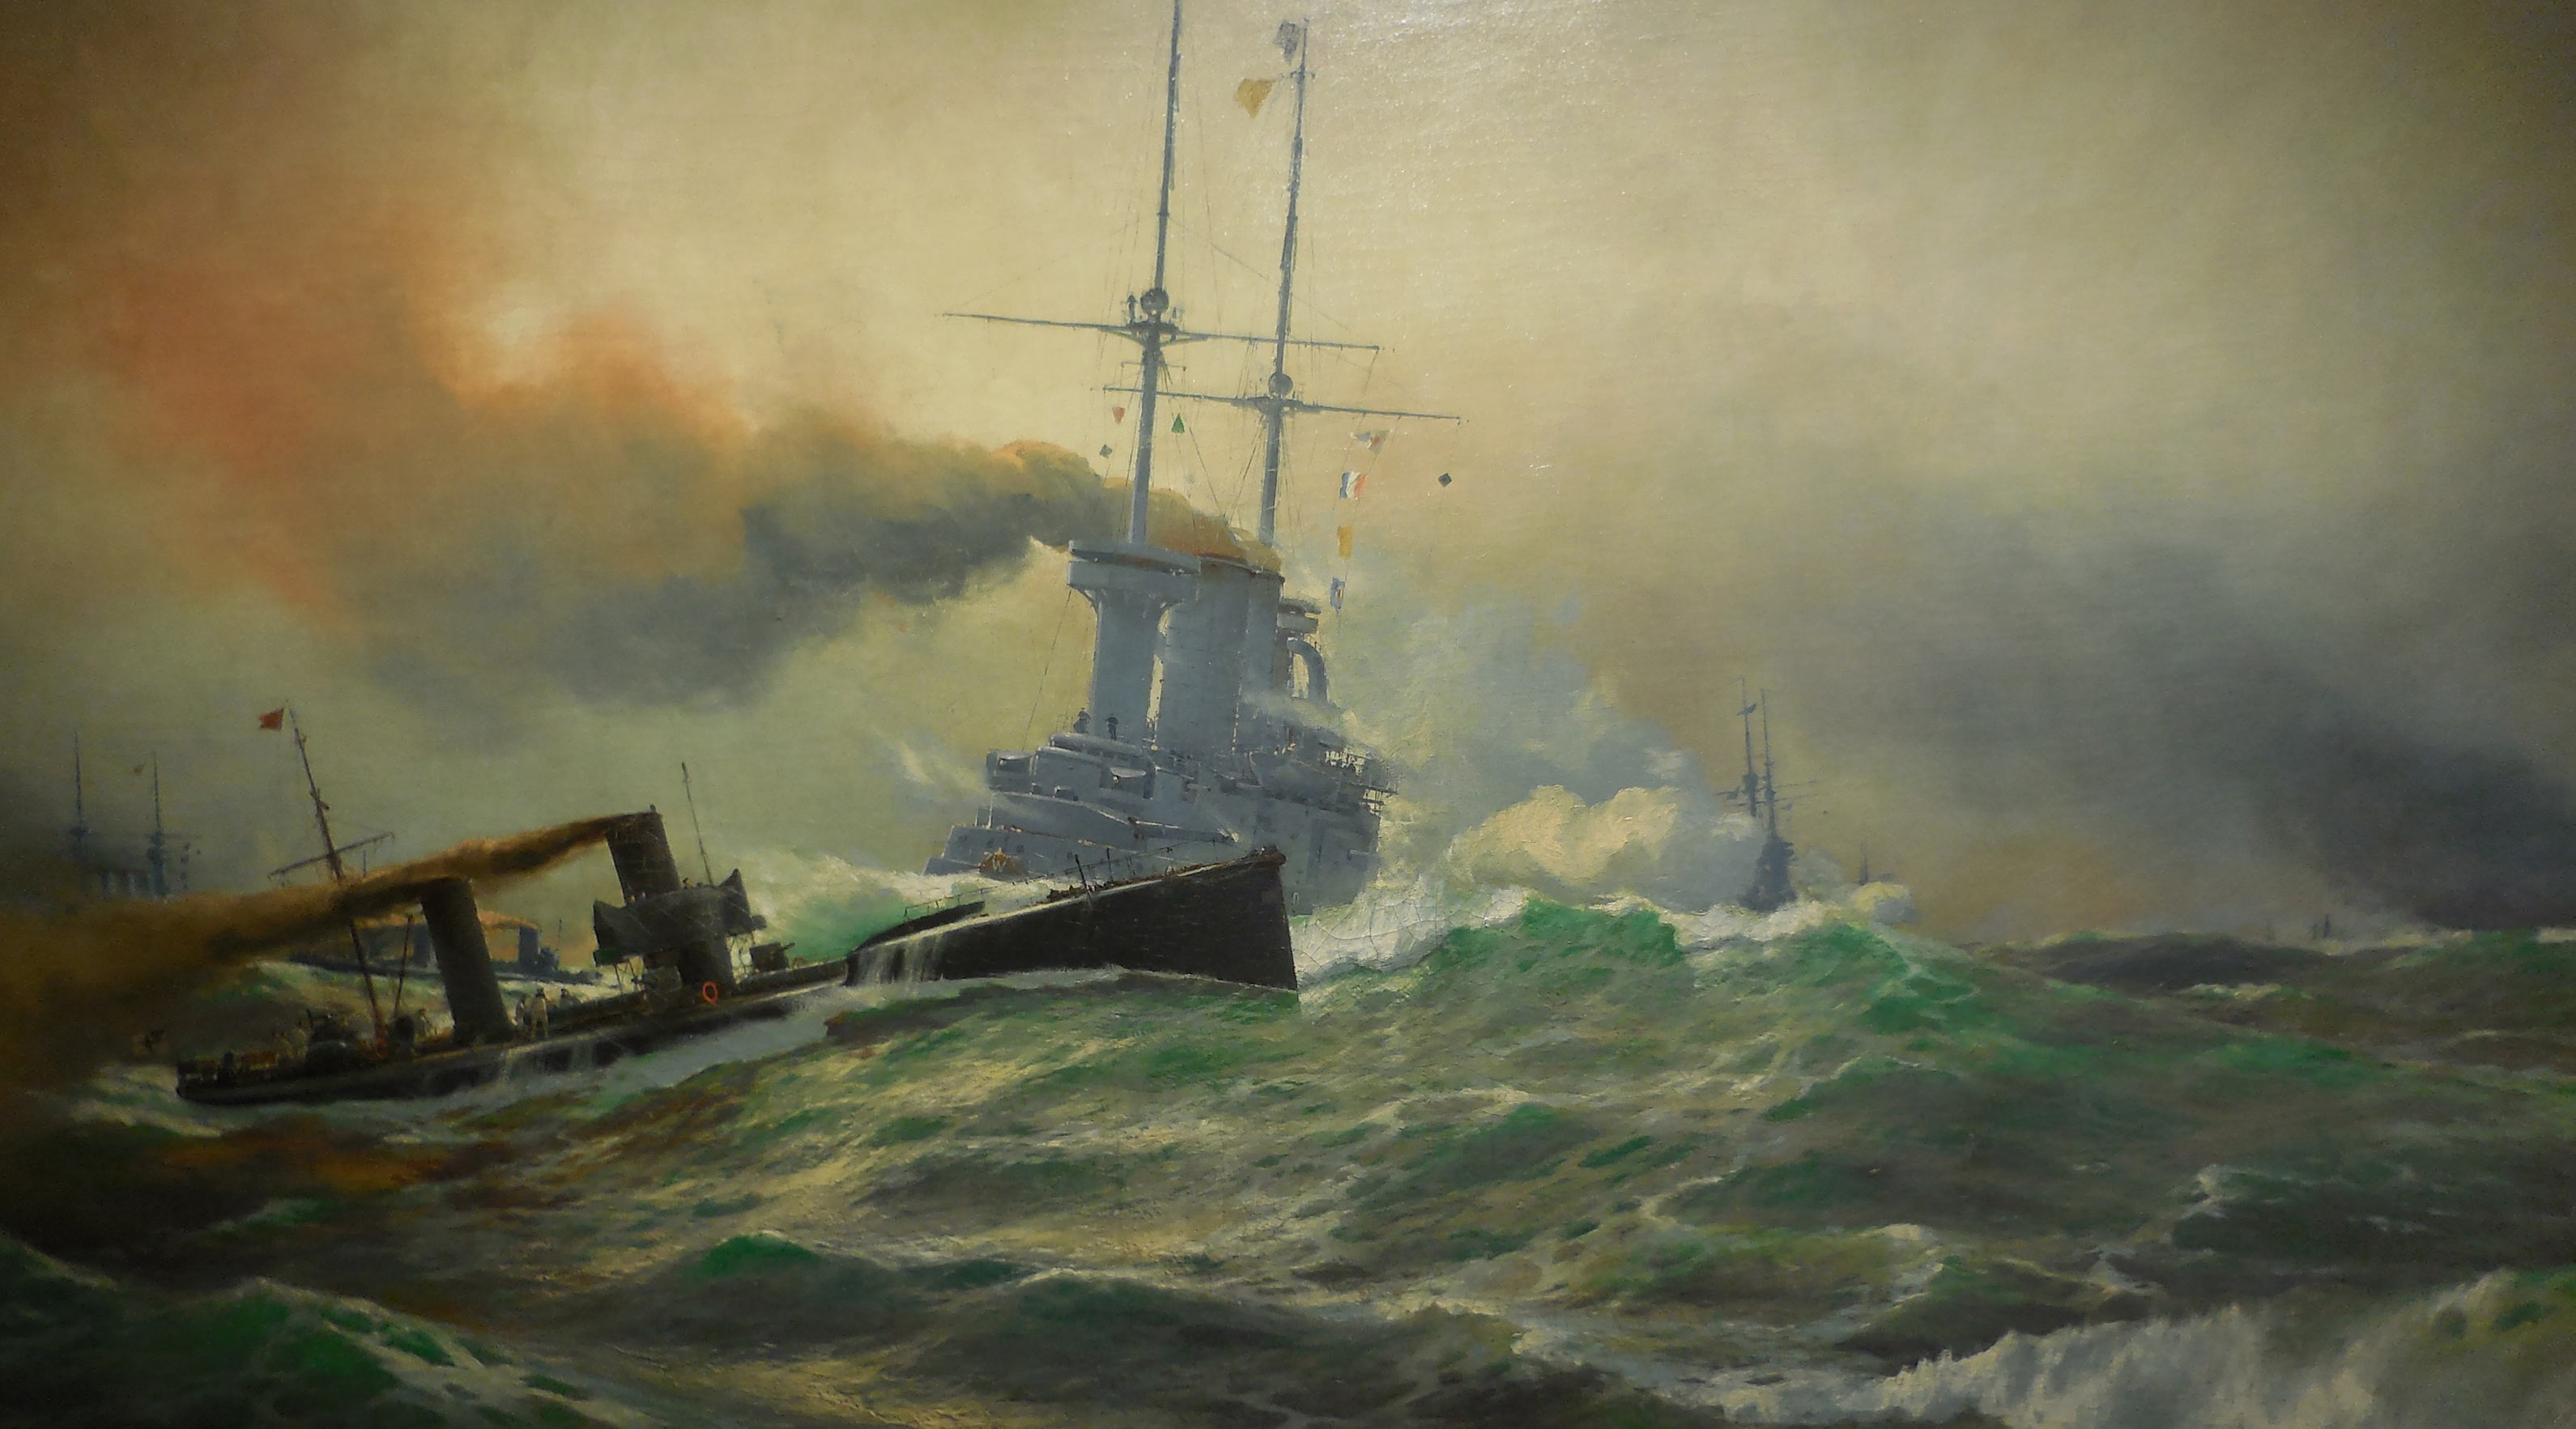 'Stander Z' the signal to the German destroyer flotillas to attack at the Battle of Jutland on 31st May 1916: picture by Willy Stoewer